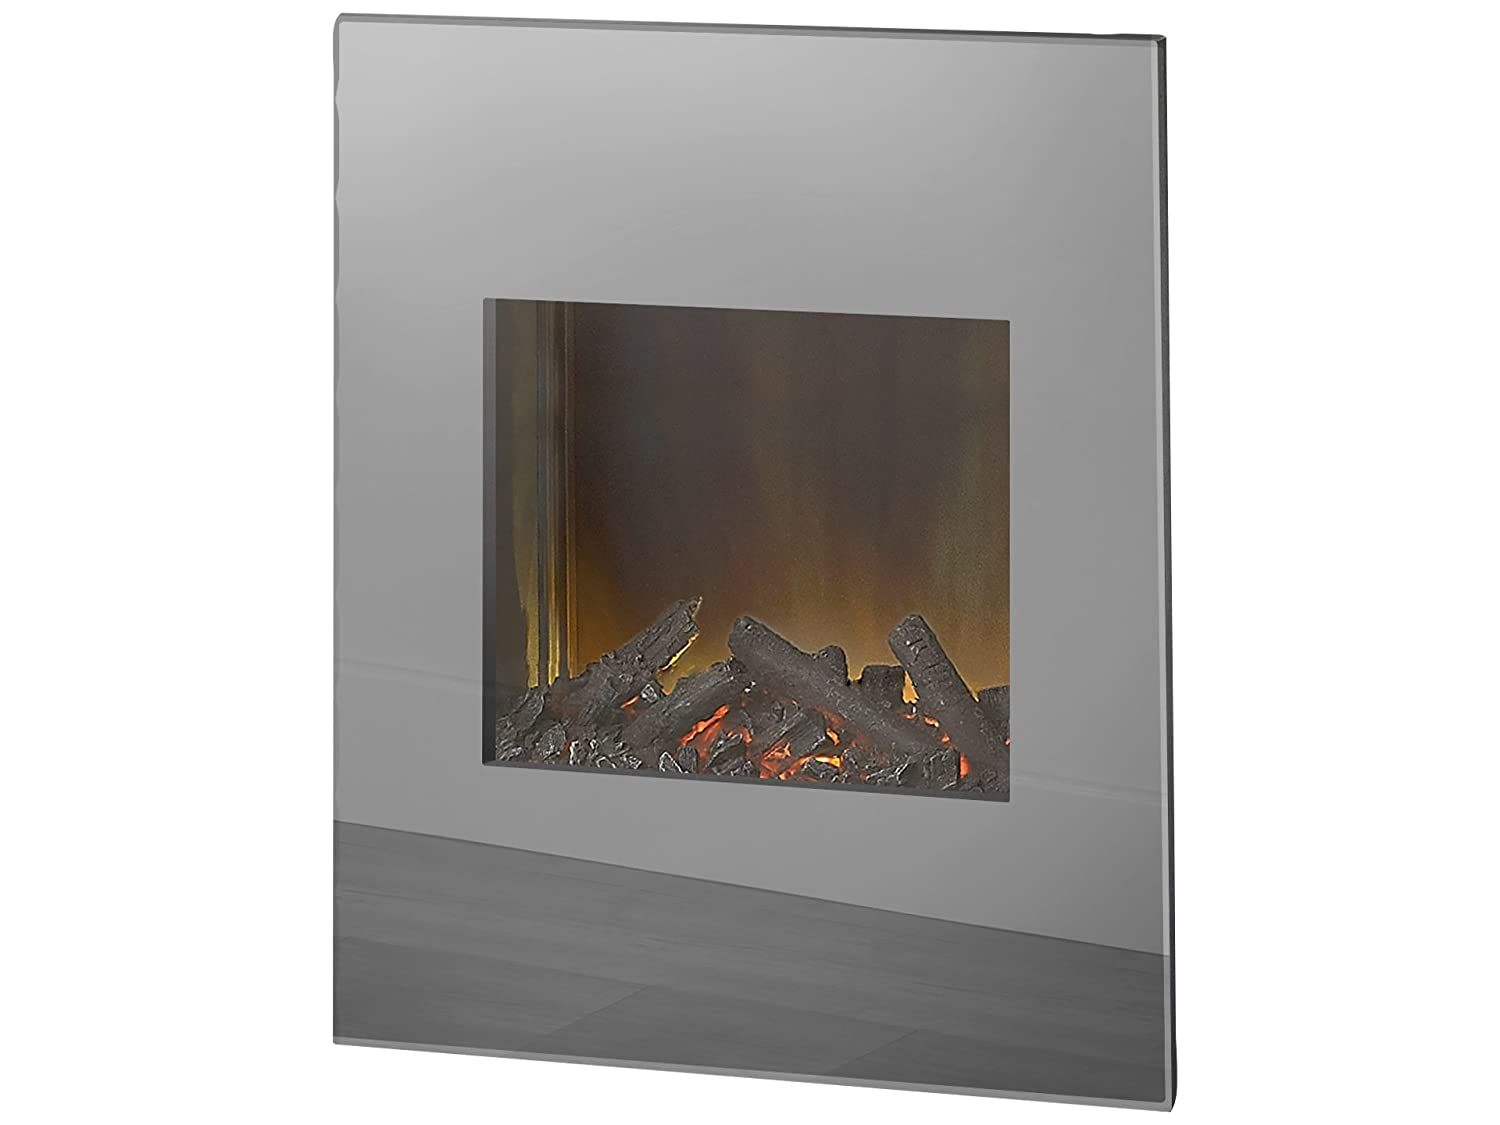 Alexis mirror wall hung fire gallery home wall decoration ideas adam alexis wall mounted electric fire with mirrored fascia 18 adam alexis wall mounted electric fire with mirrored fascia 18 inch log bed amazon kitchen amipublicfo Images